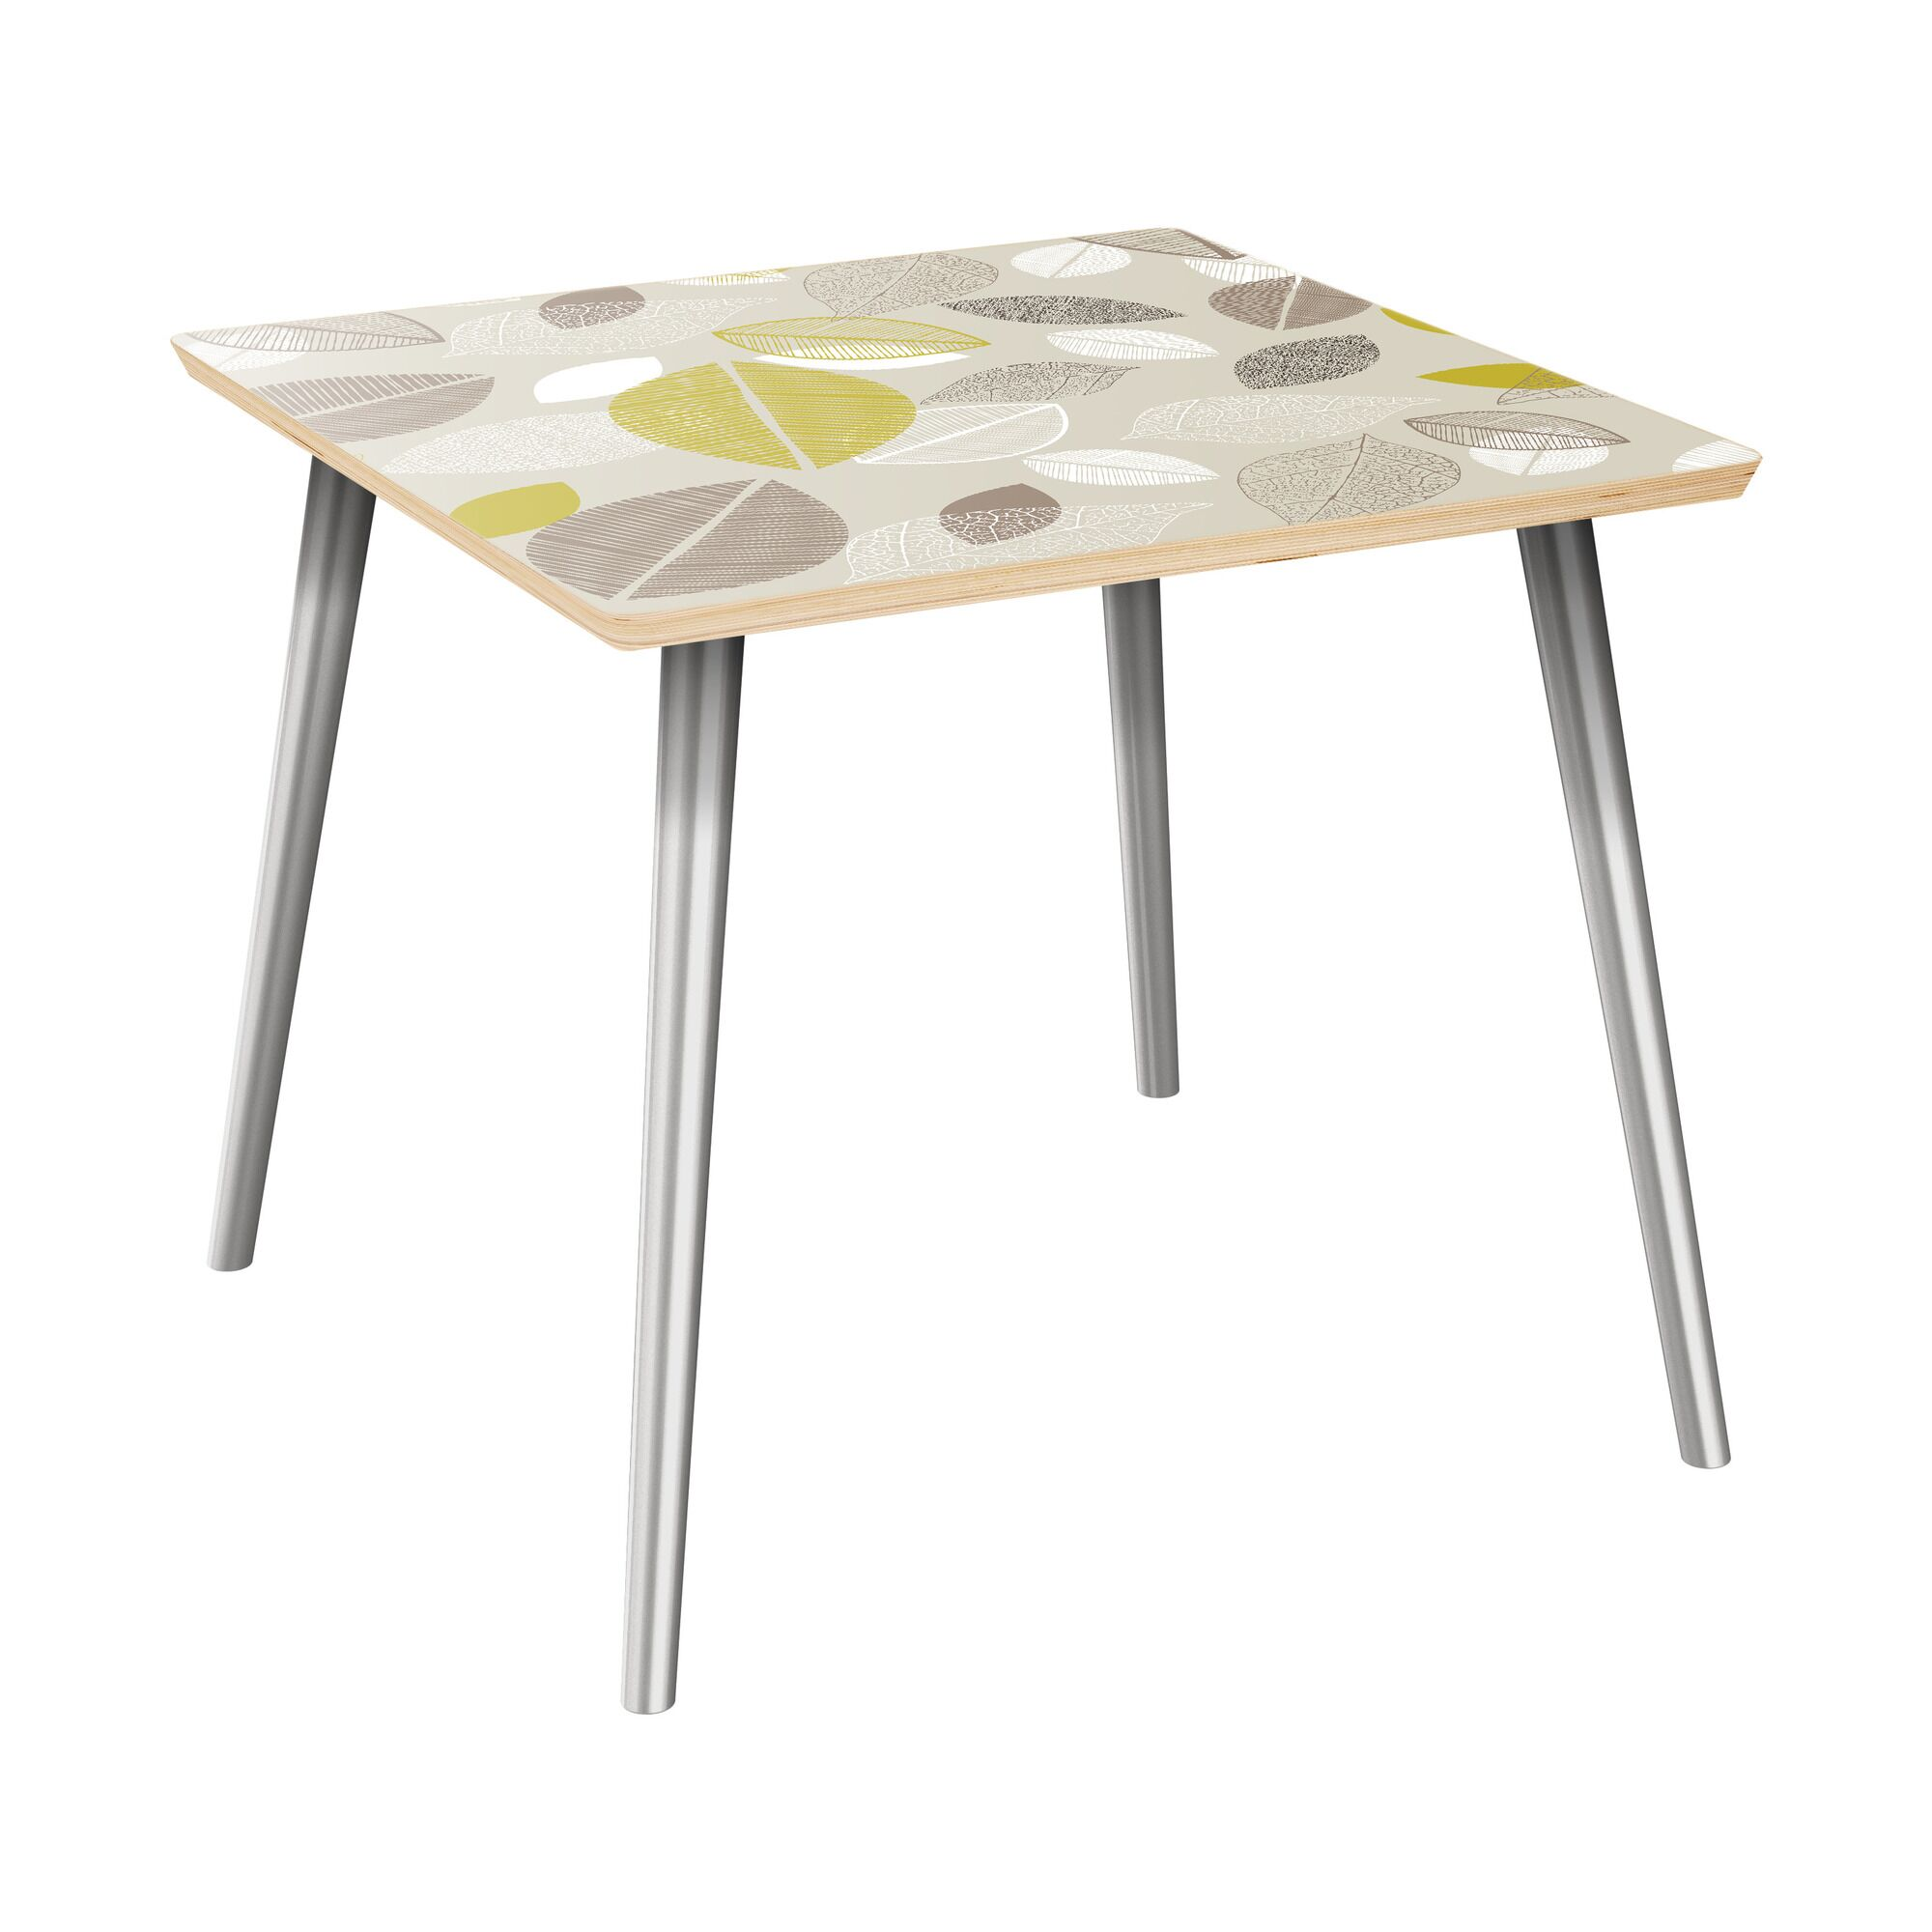 Scharff End Table Table Top Boarder Color: Natural, Table Base Color: Chrome, Table Top Color: Green/Brown